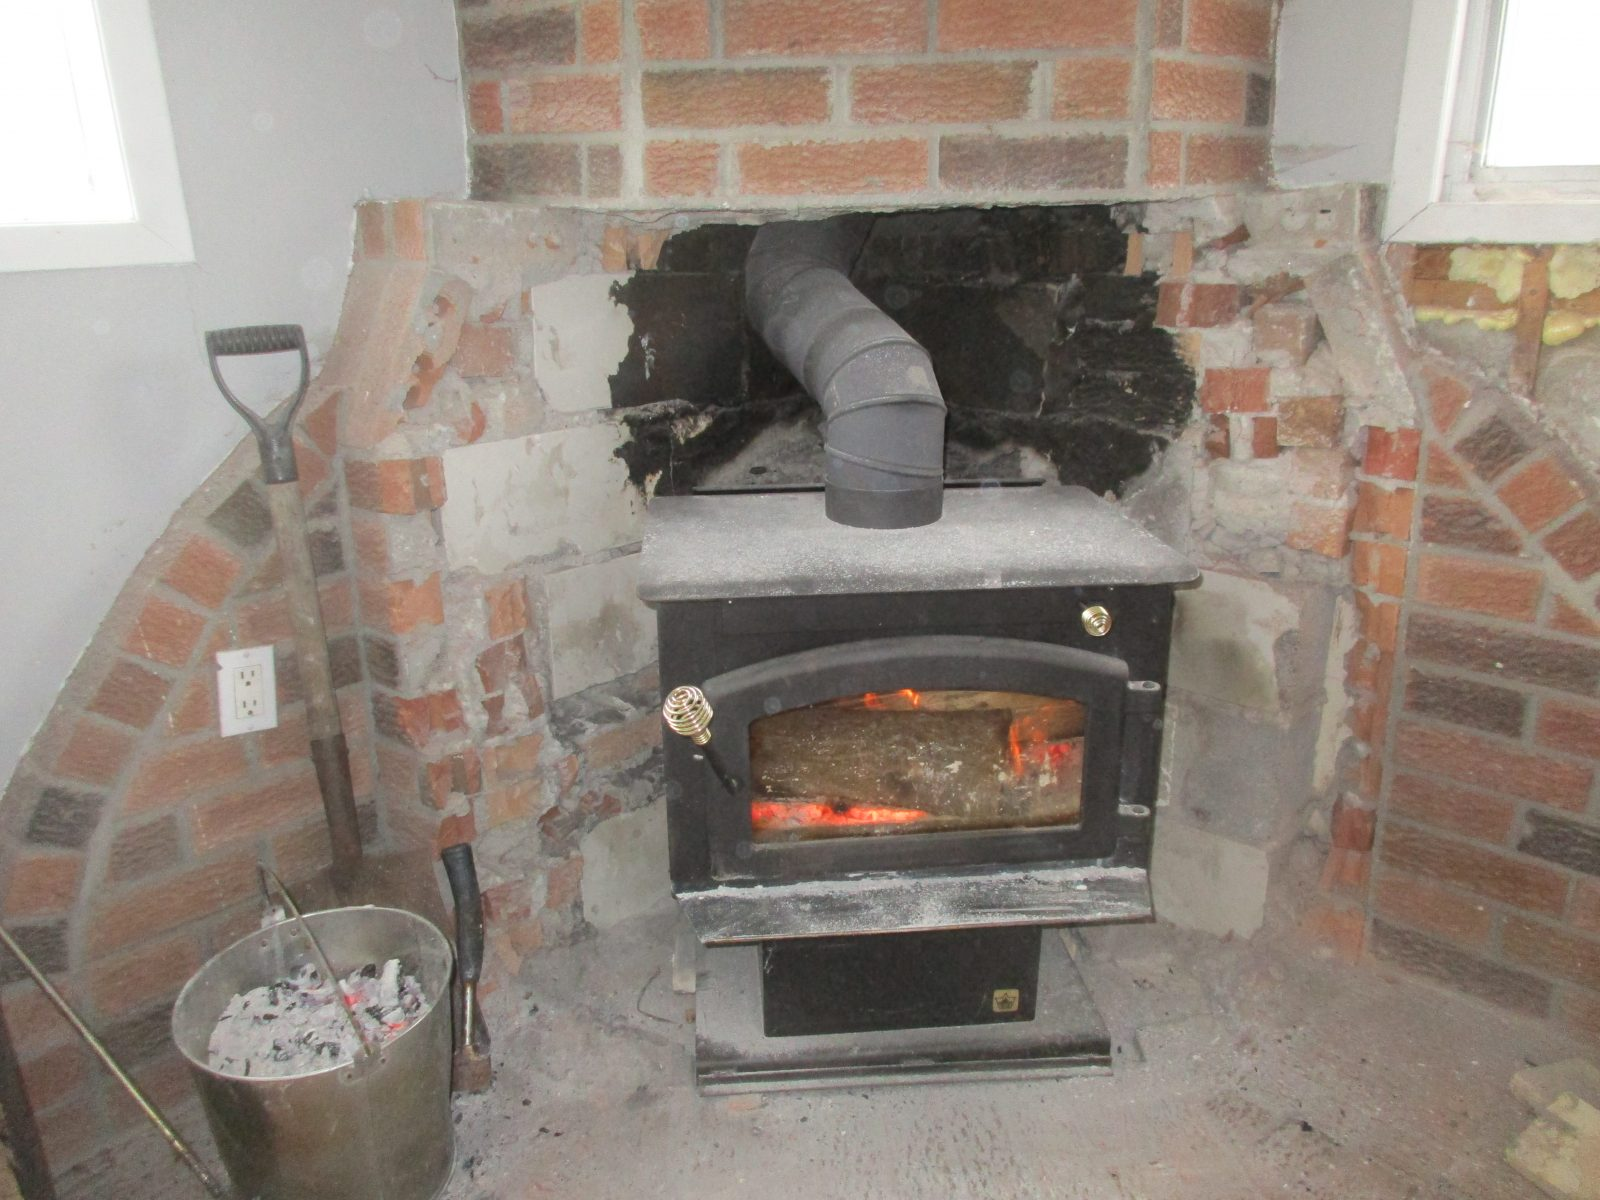 Interesting wood stove installation in old fireplace location.